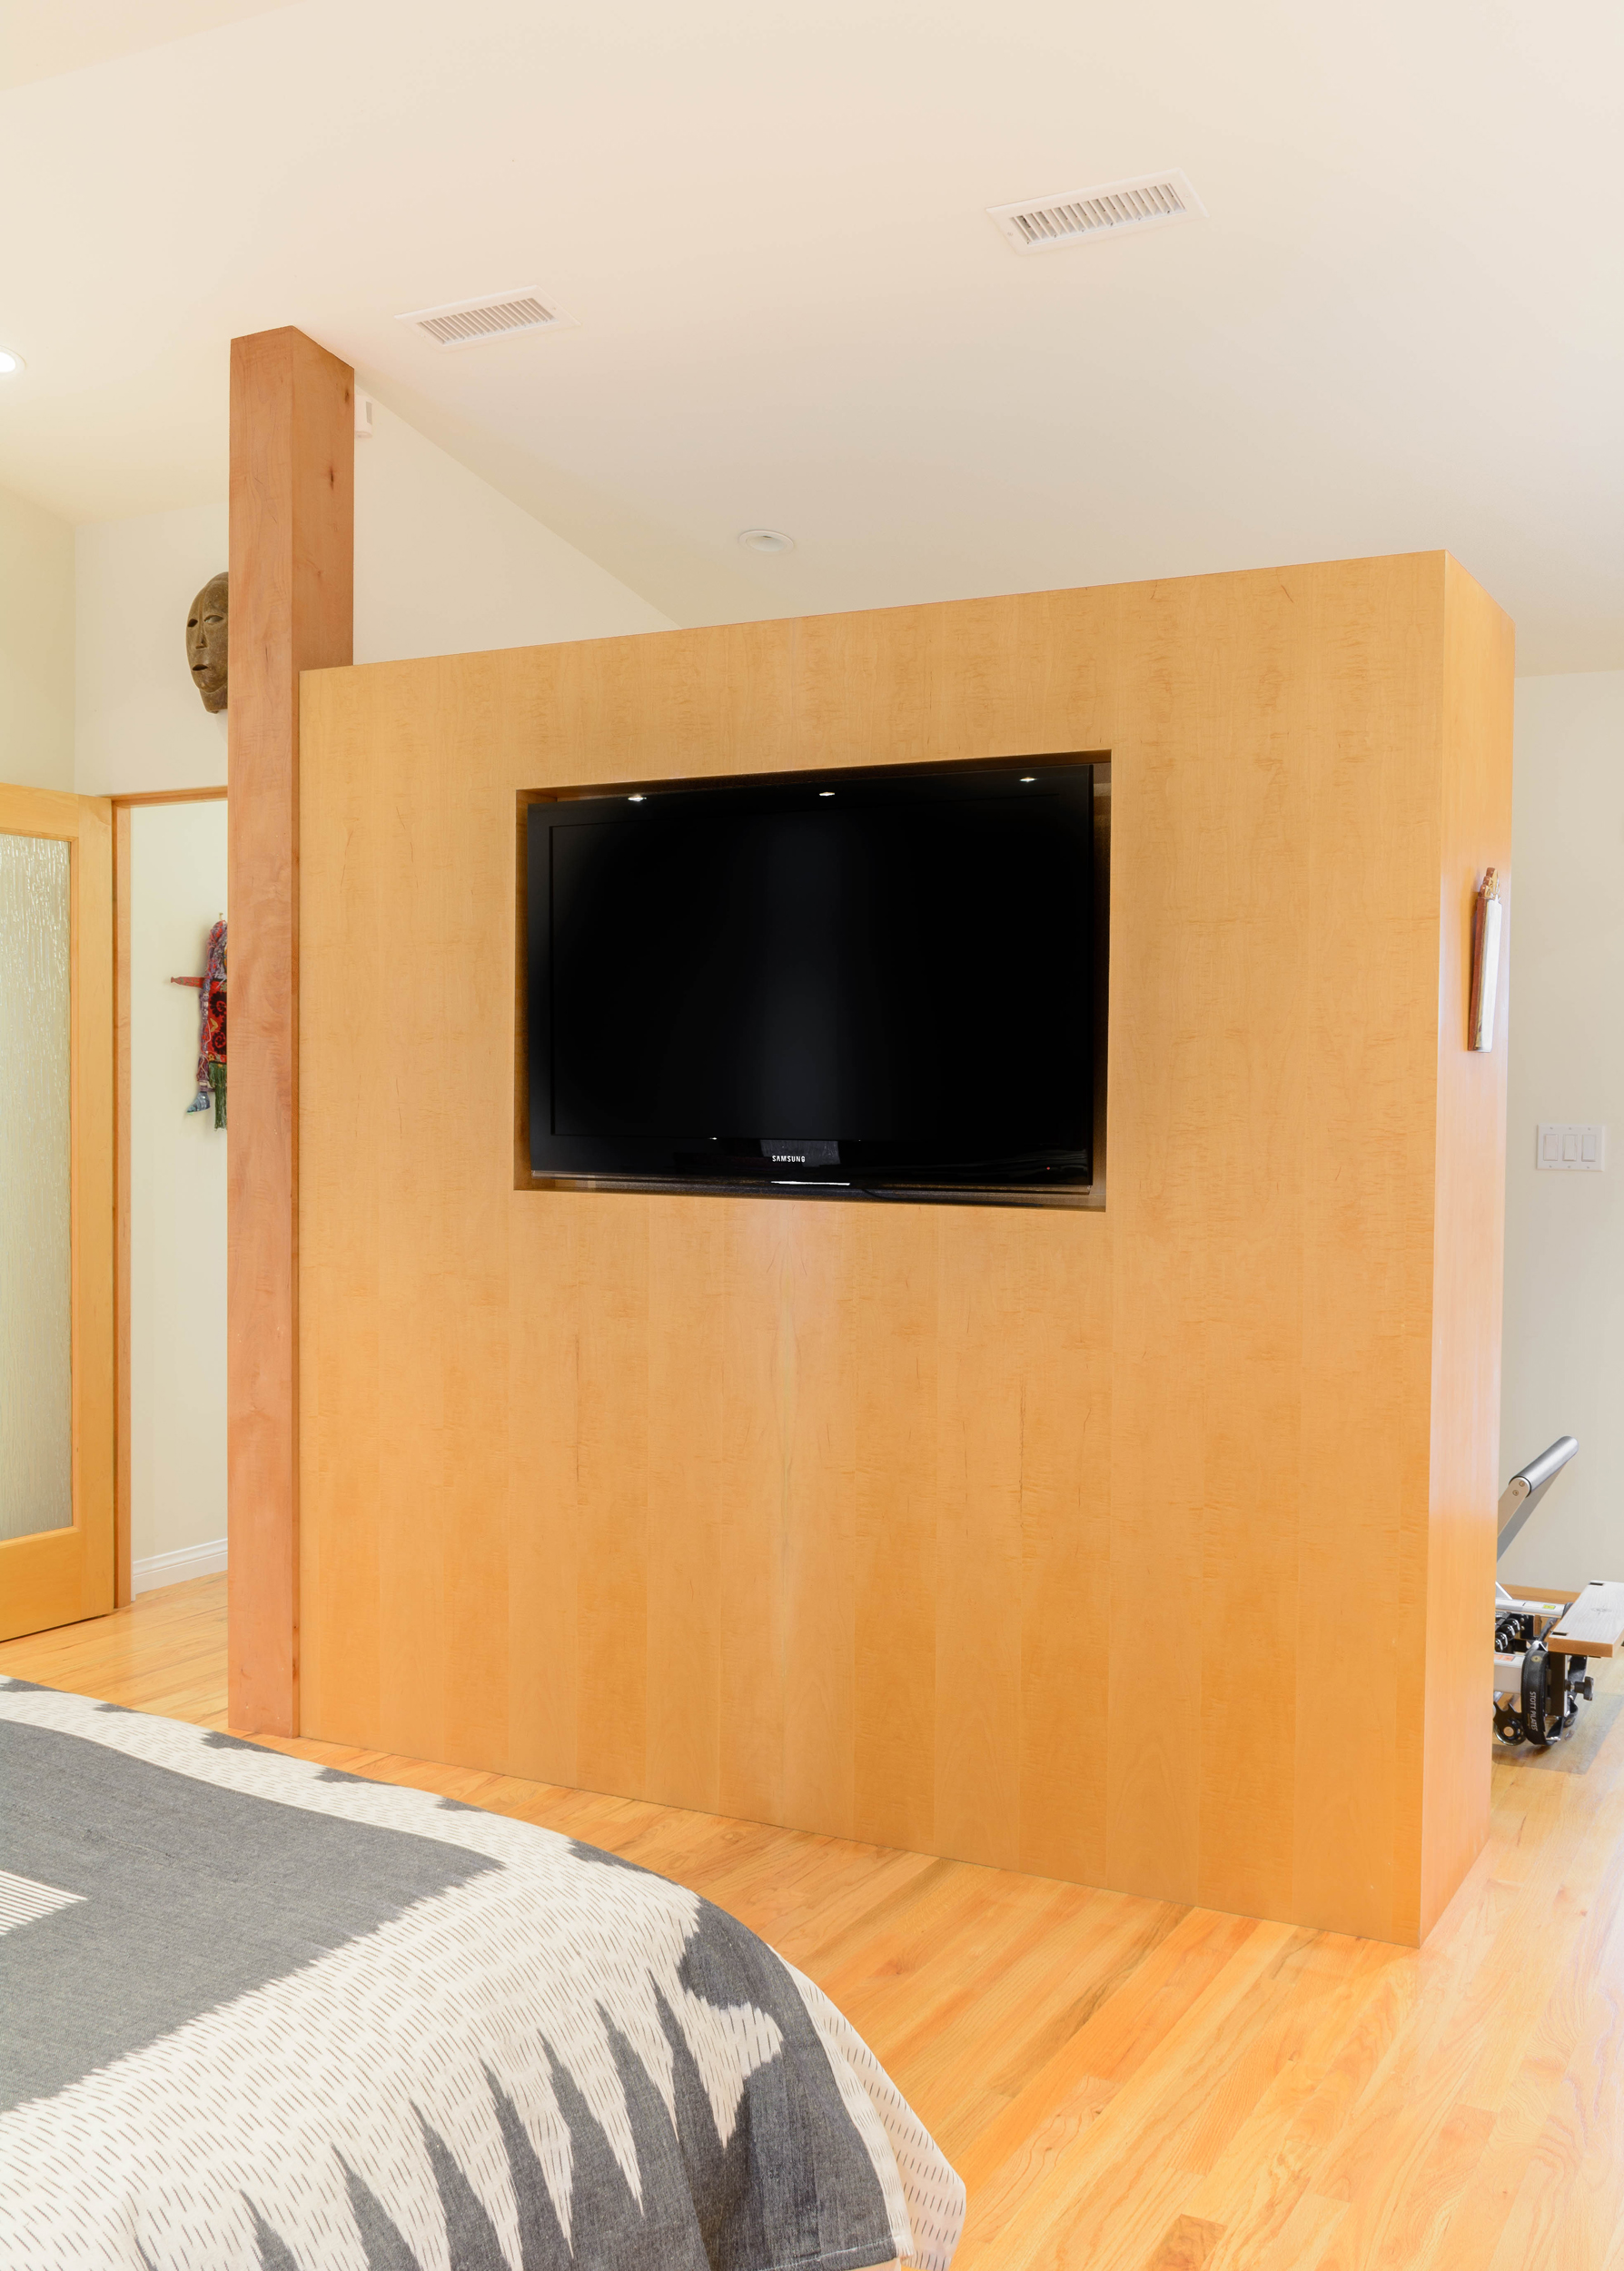 Maple room divider separates the master bedroom from the workout area